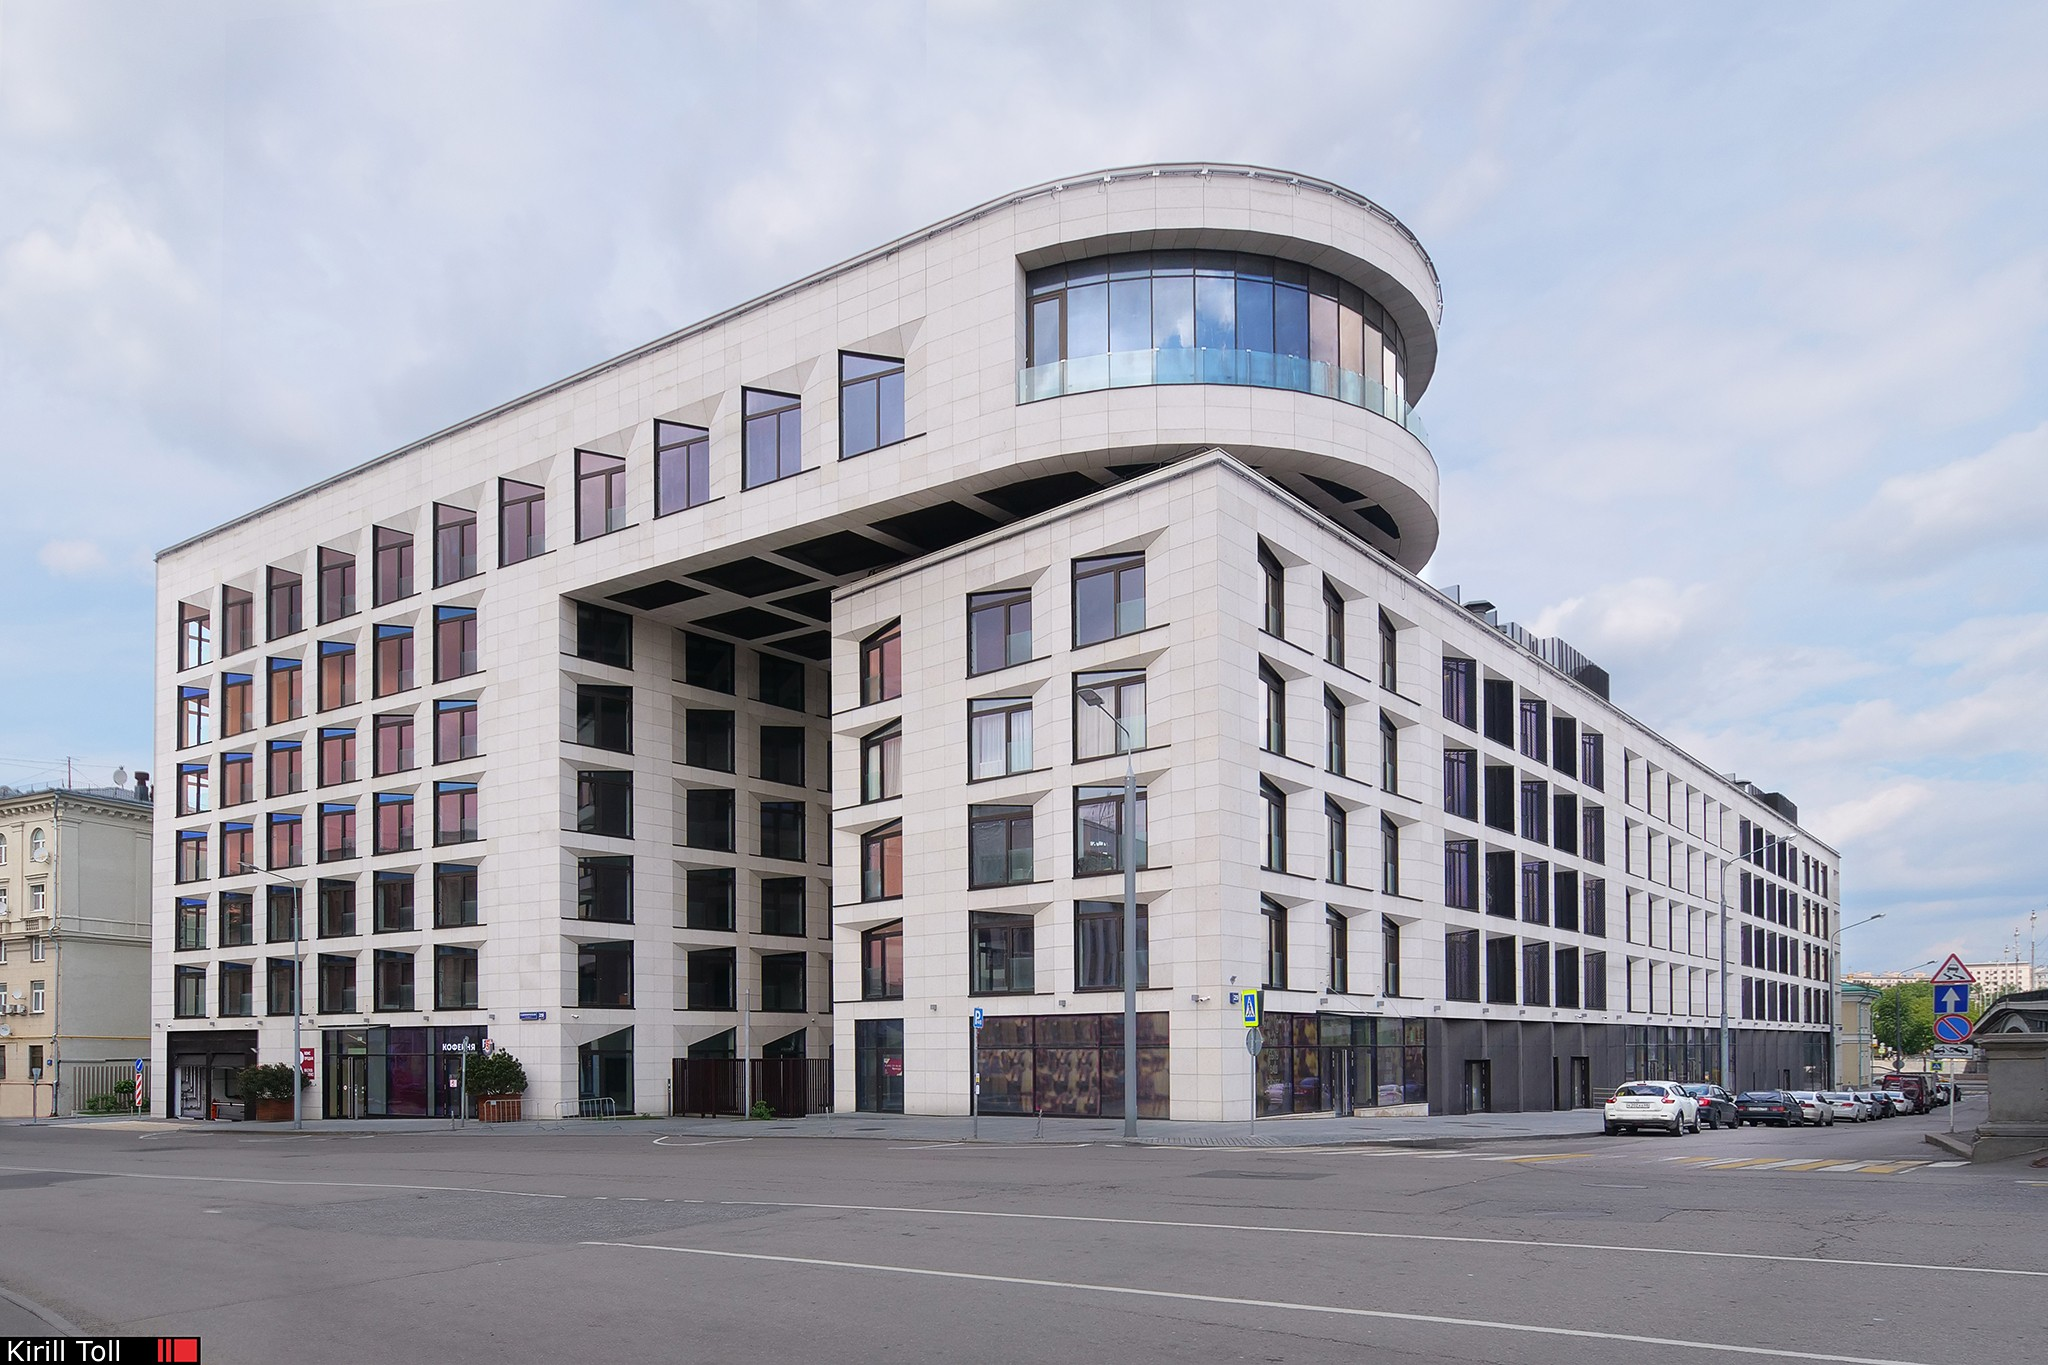 The building of the architect Hadi Teherani in Moscow